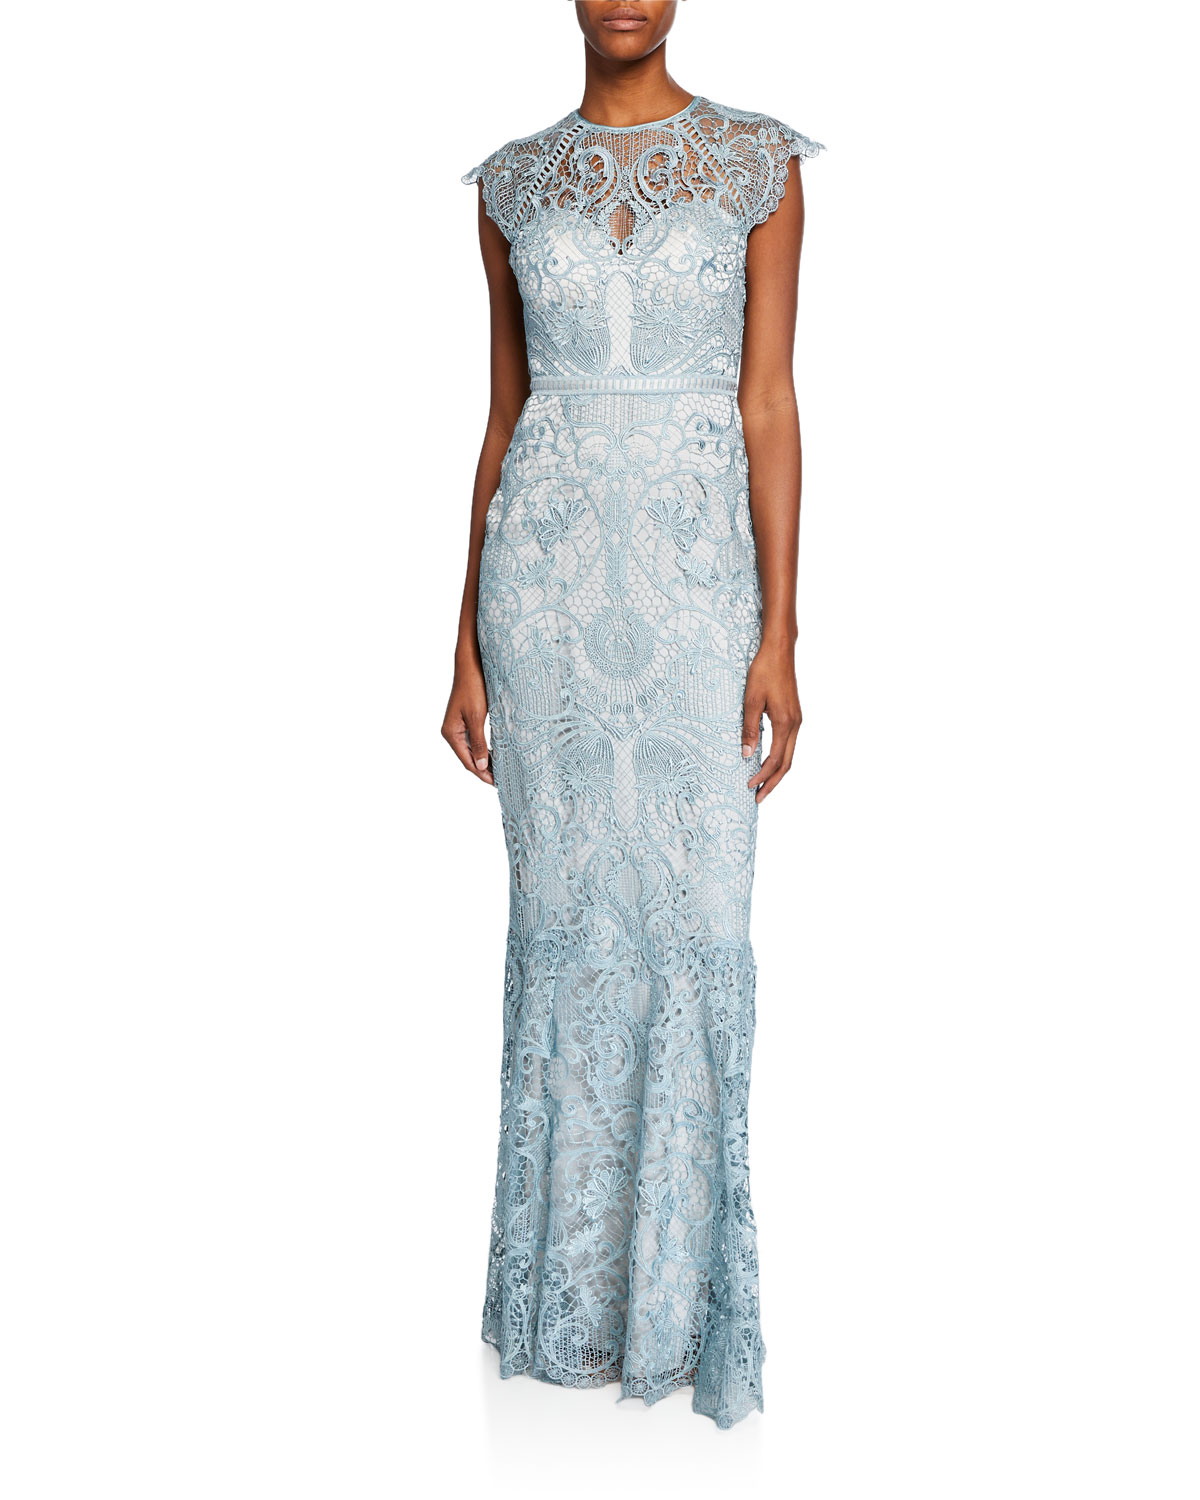 Catherine Deane Light Blue Miracle Scallop Lace Cap-Sleeve Gown with Open-Back